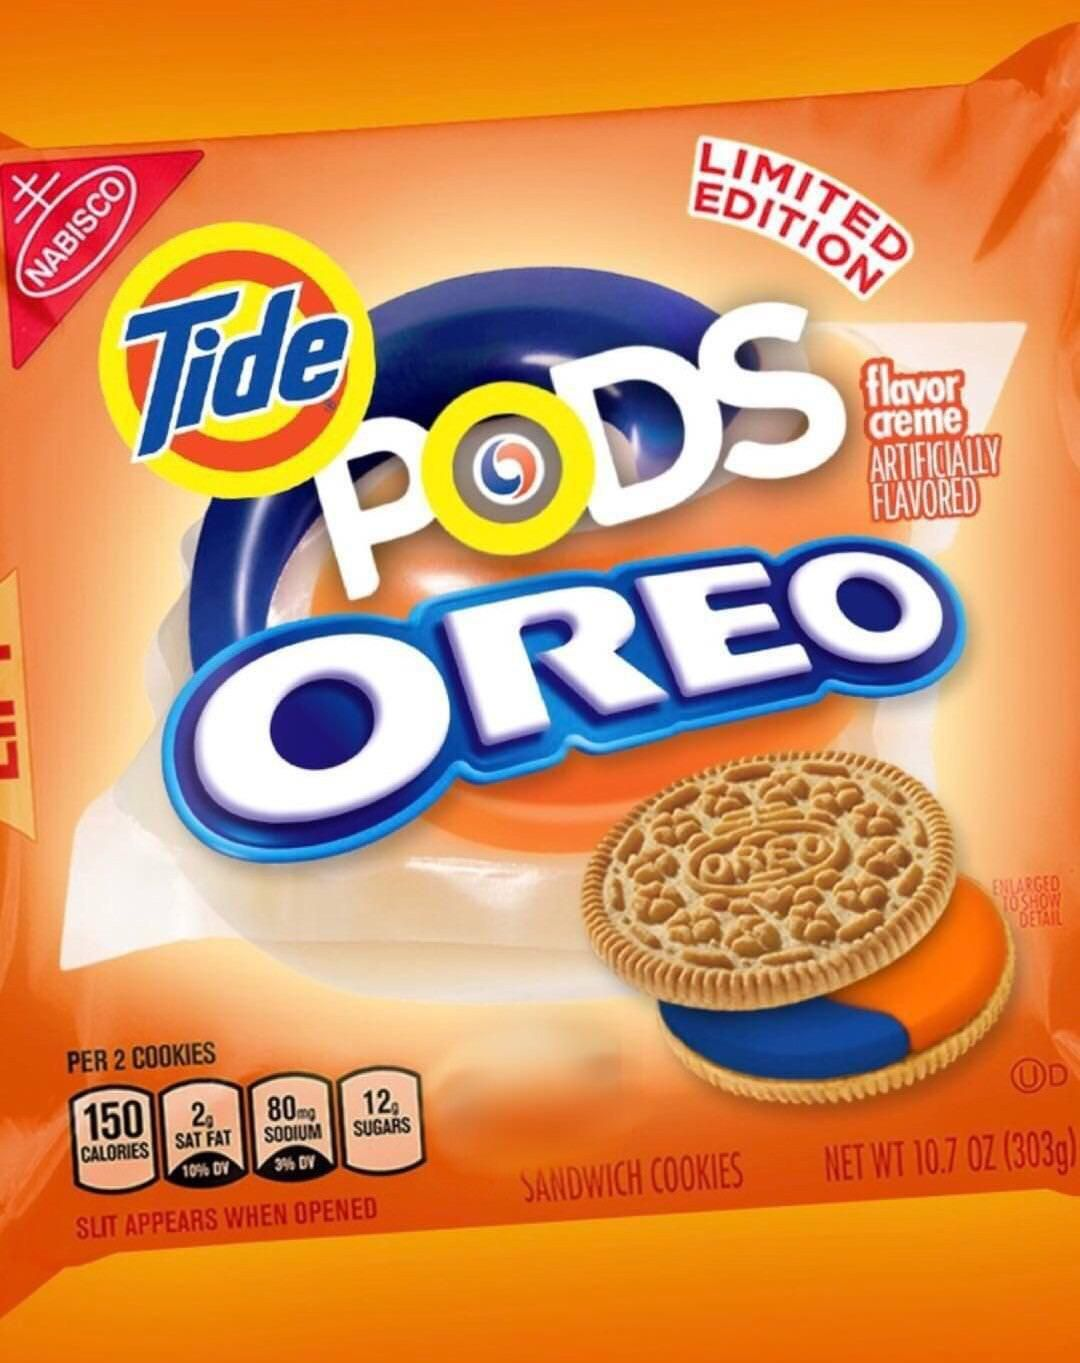 What our world has come to Weird snacks, Weird oreo